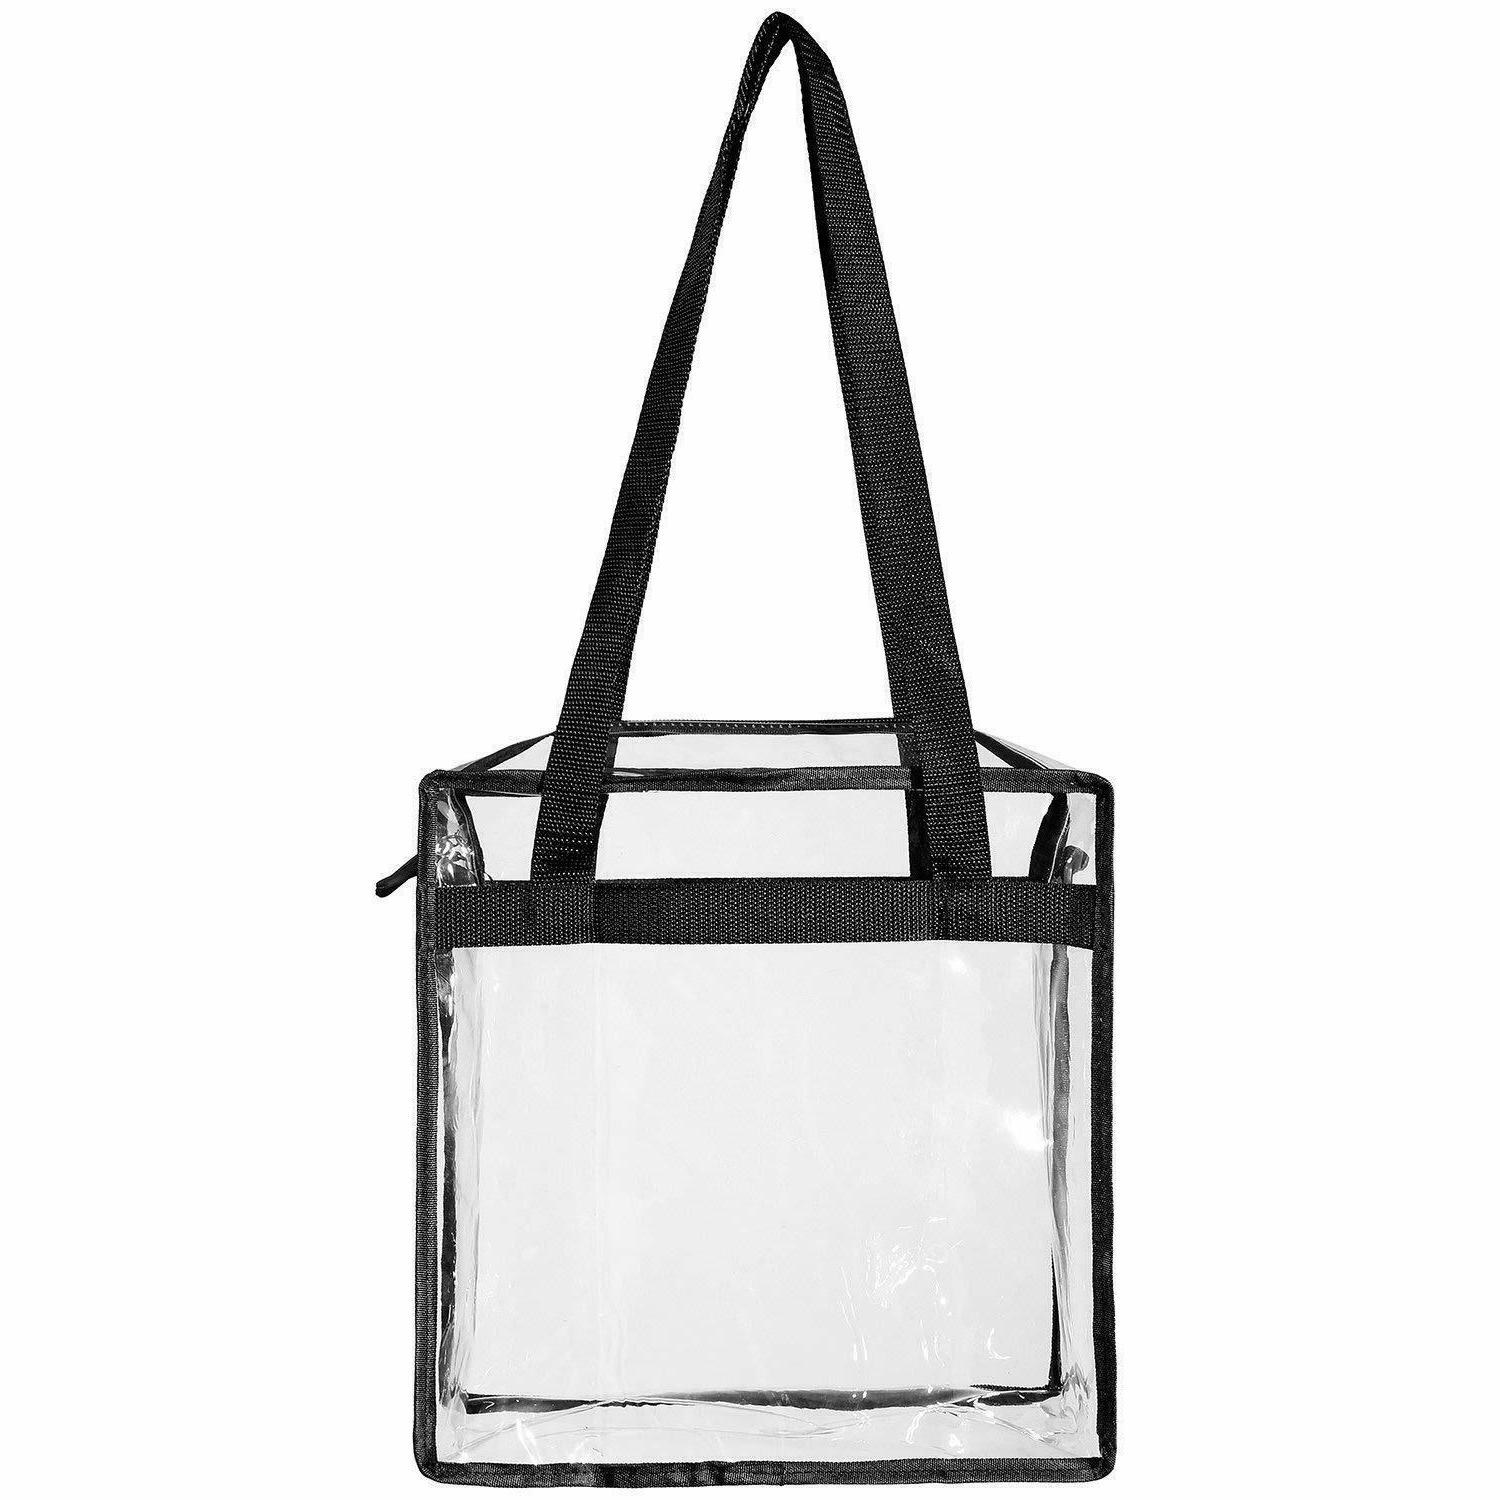 BAGAIL Bag Tote Bag is for Sports